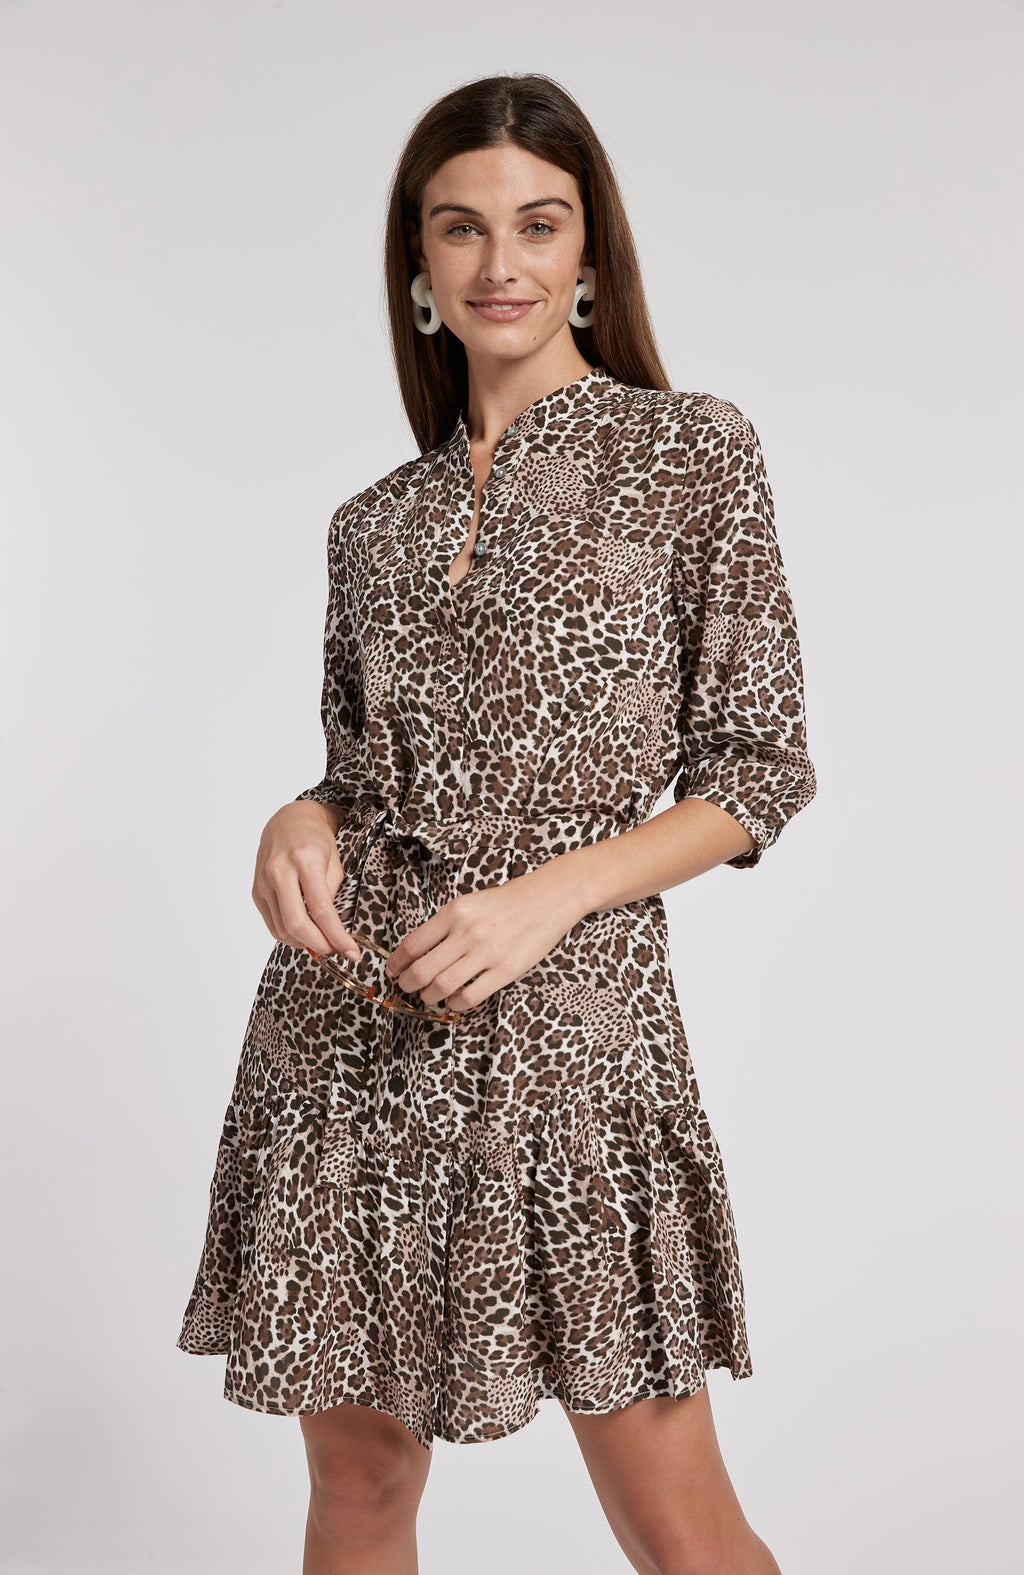 PETRA SILK LEOPARD DRESS - BROWN LEOPARD TylerBoe 0 BROWN LEOPARD